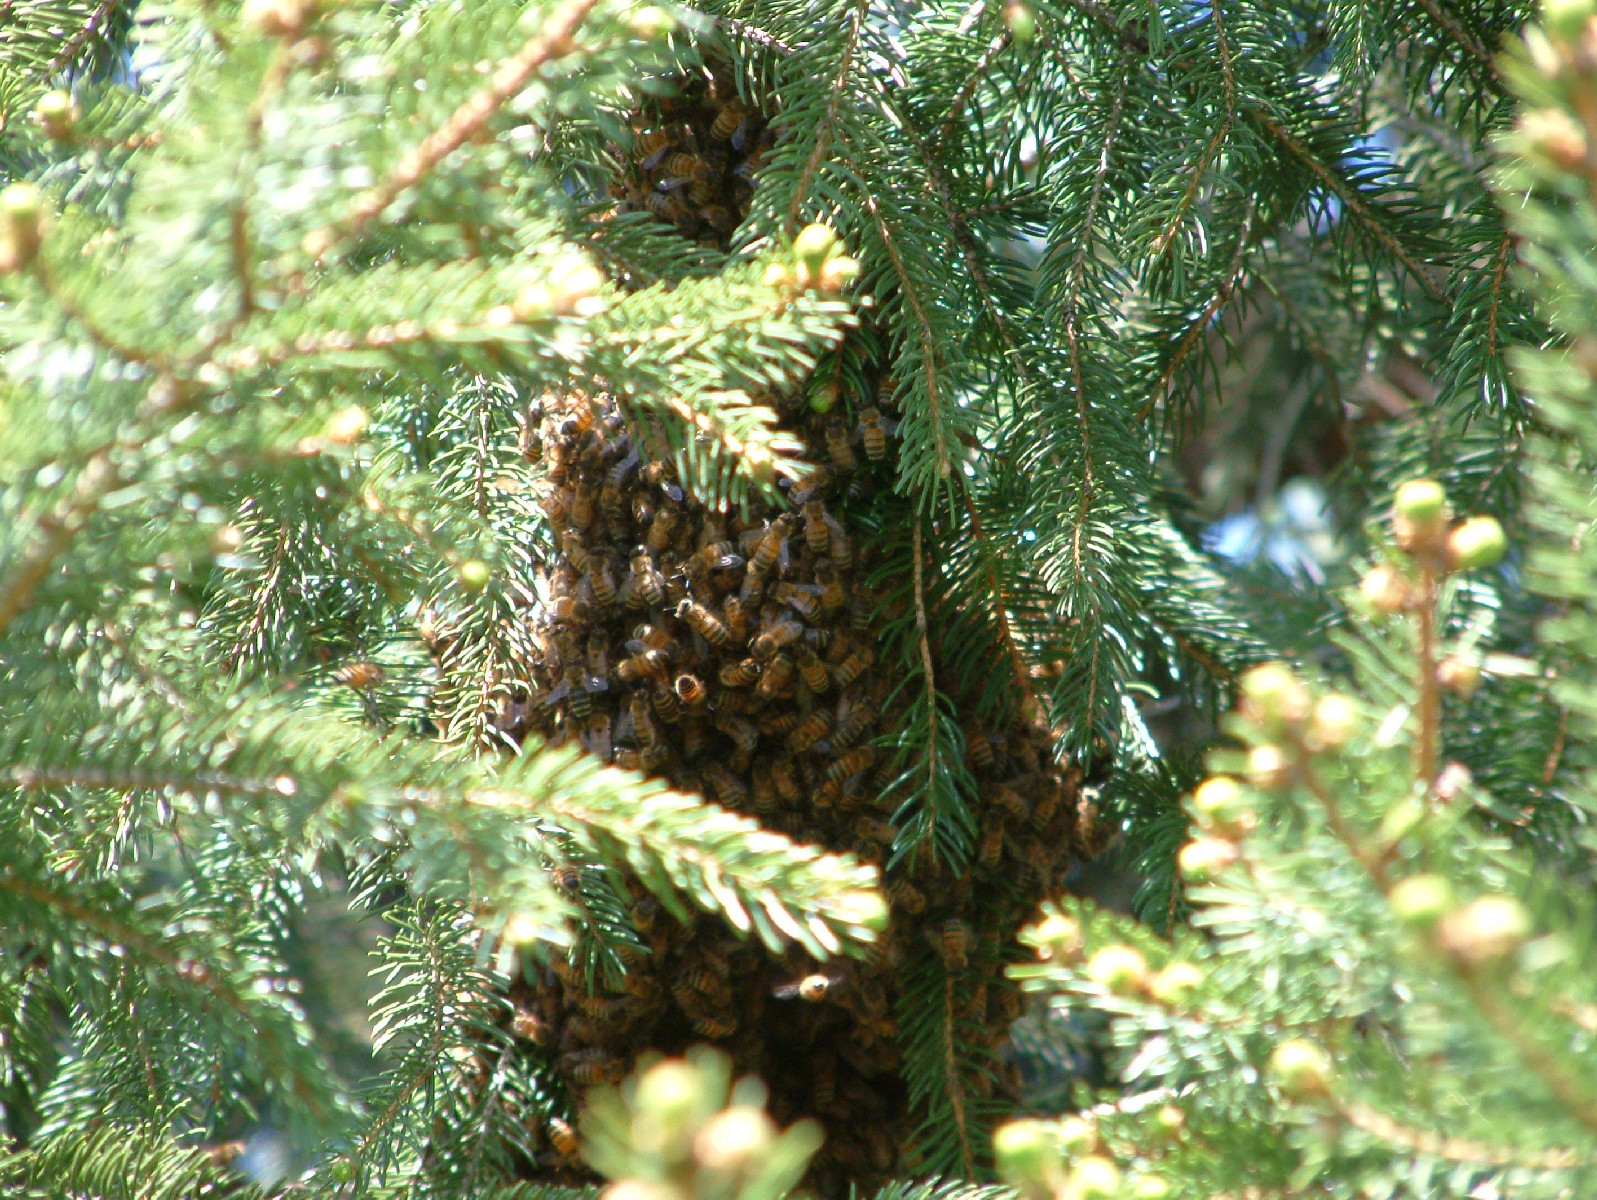 Swarm in Pines